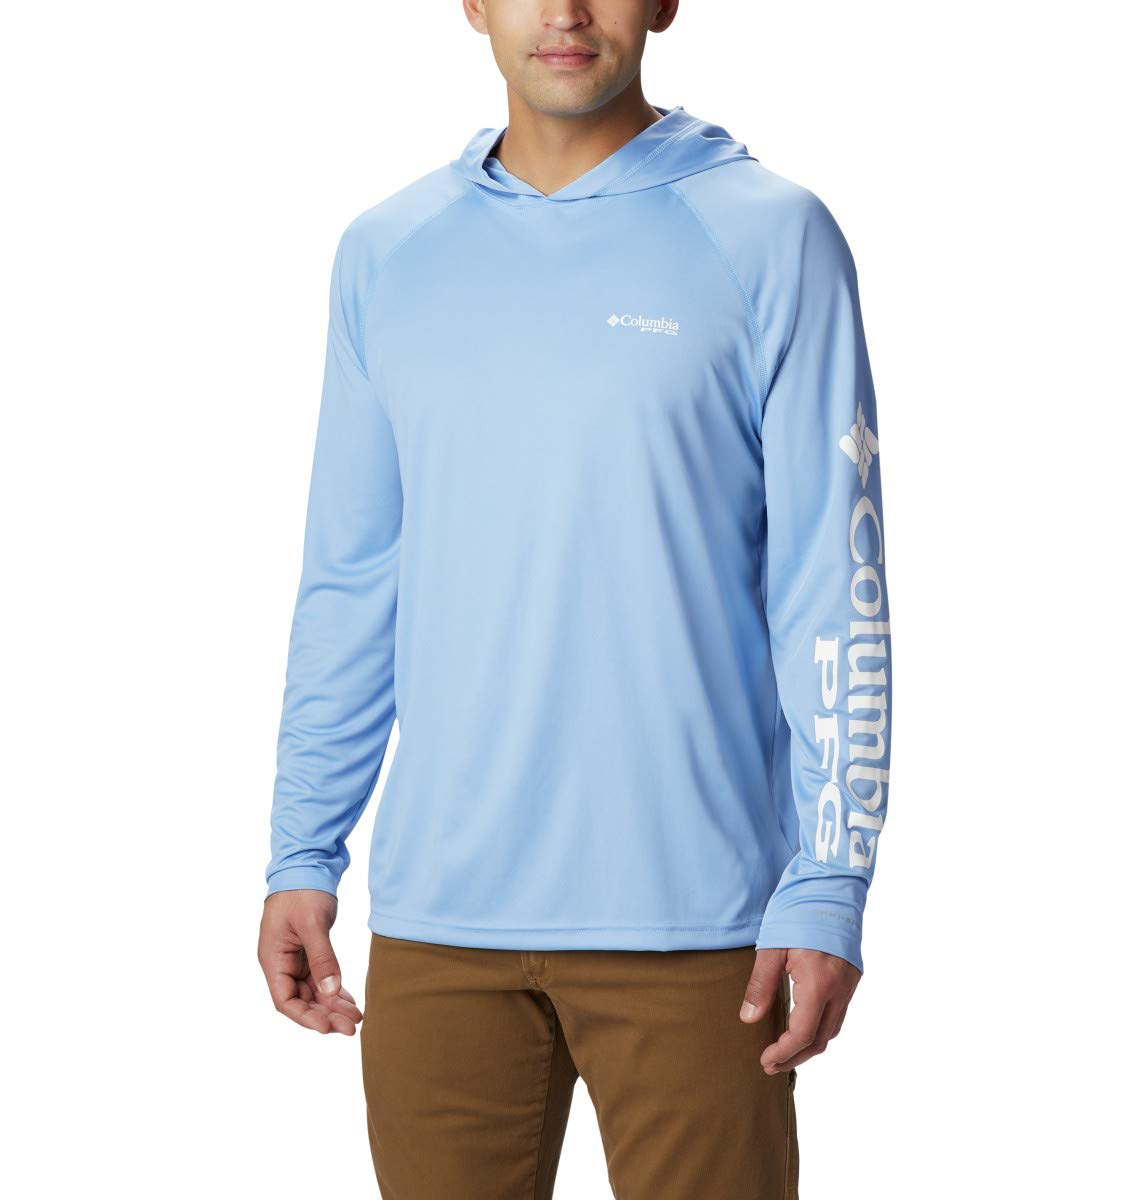 Columbia Men's Terminal Tackle Sun Hoodie, Moisture Wicking, White Cap, White Logo, XX-Large by Columbia